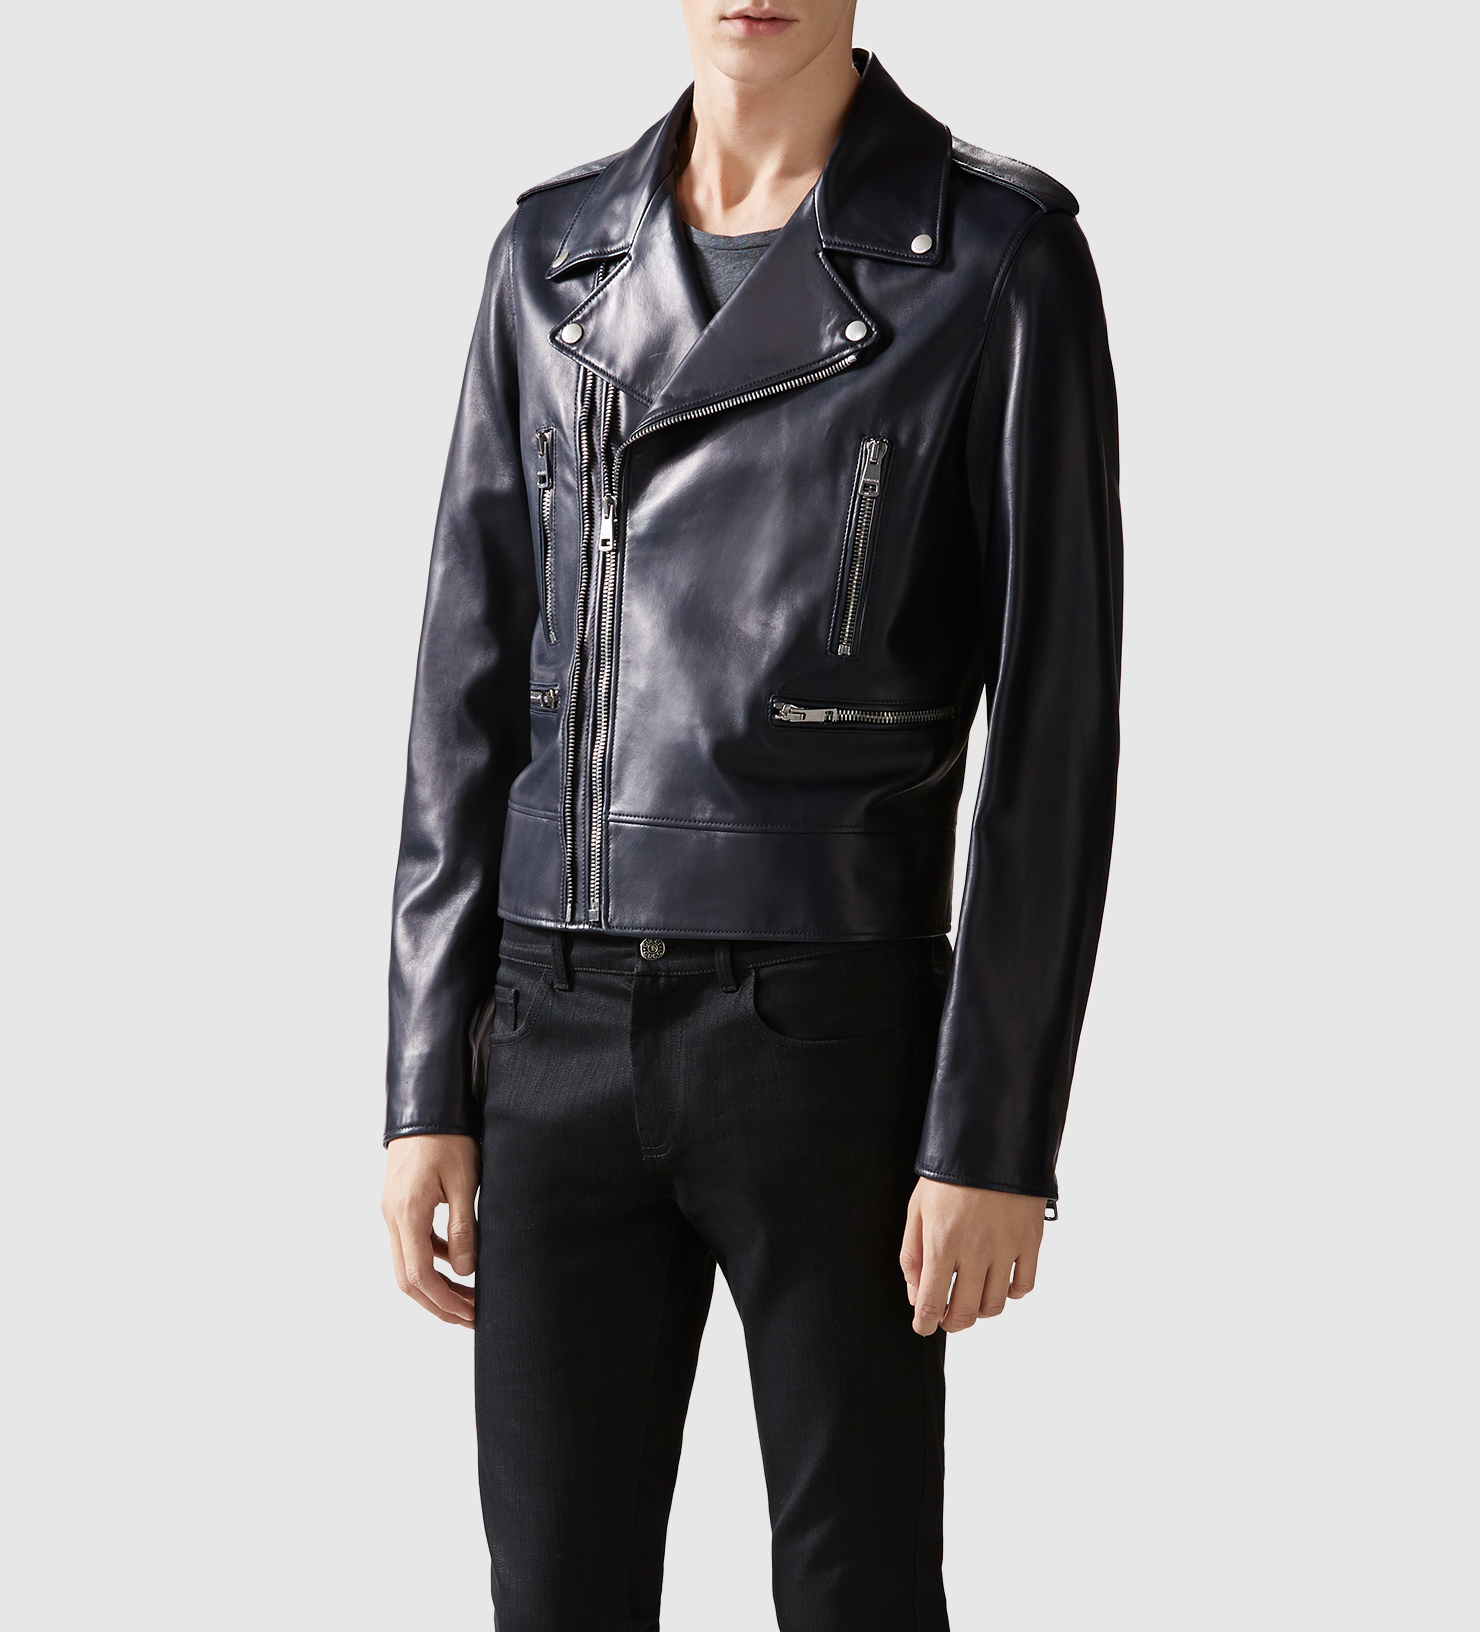 lyst gucci leather biker jacket in black for men